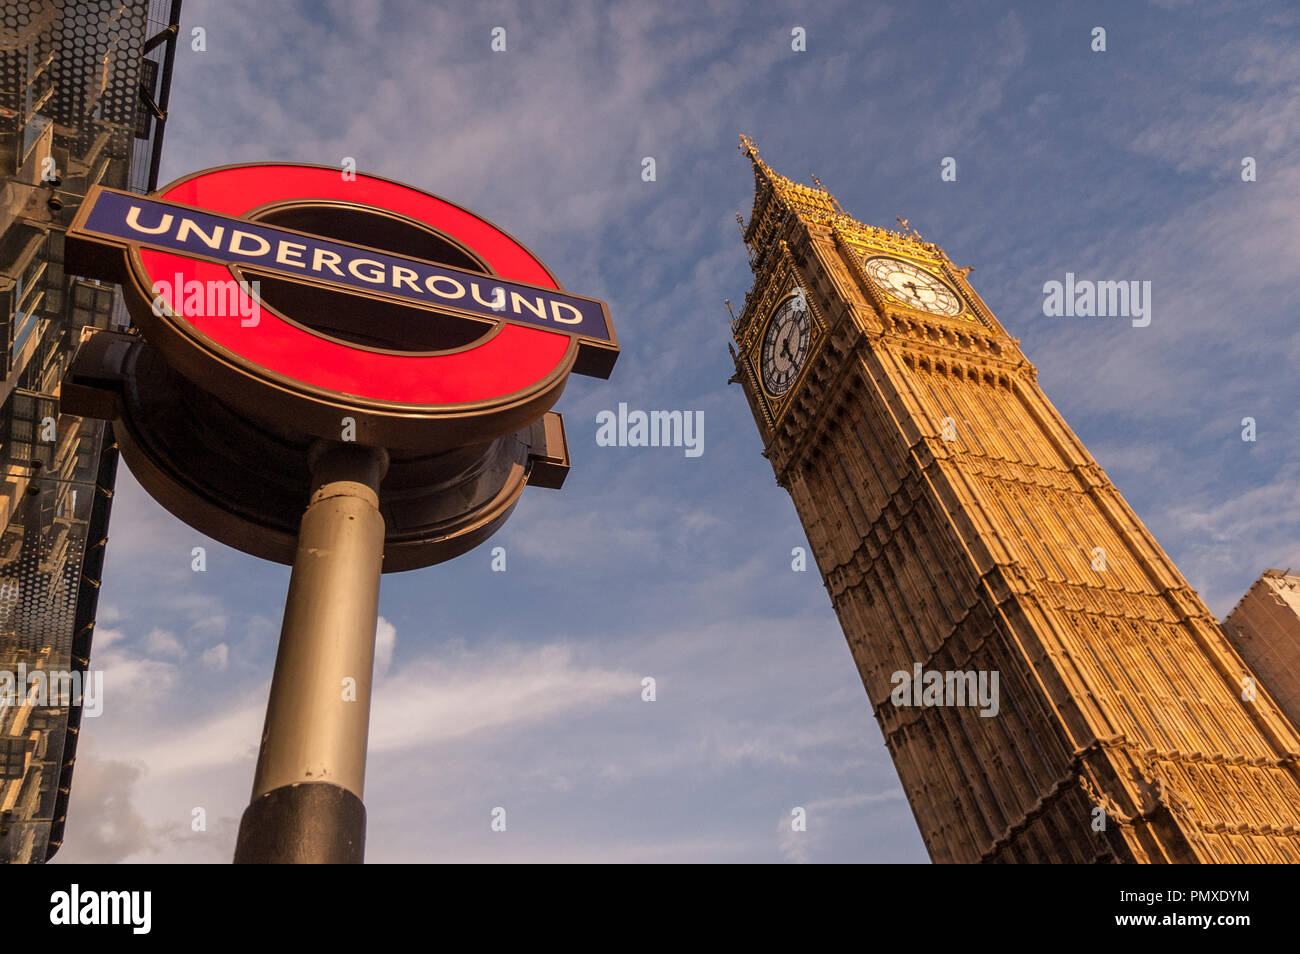 London, England, UK - September 18, 2010: The Elizabeth clock tower, home of Big Ben, rises from the Houses of Parliament beside Westminster tube stat Stock Photo